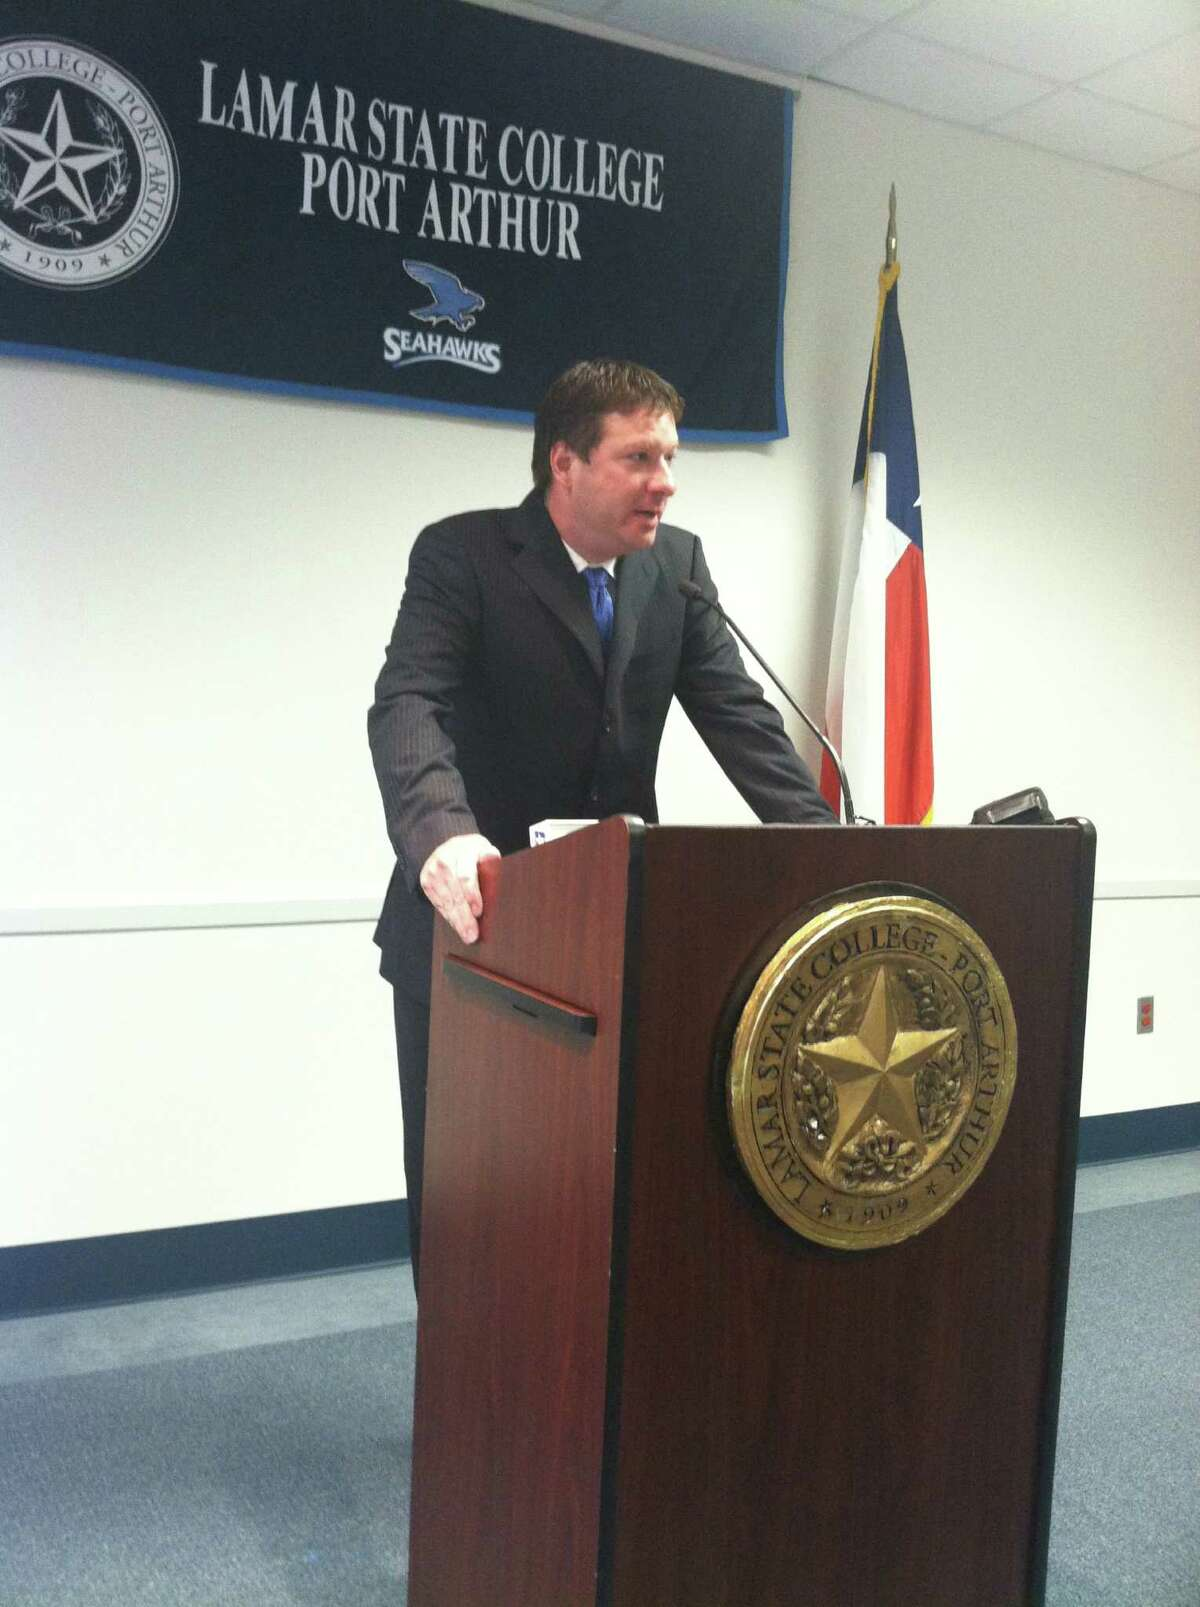 Chris Beard was named the Lamar State College-Port Arthur men's basketball coach during a press conference Tuesday, May 8, 2012.